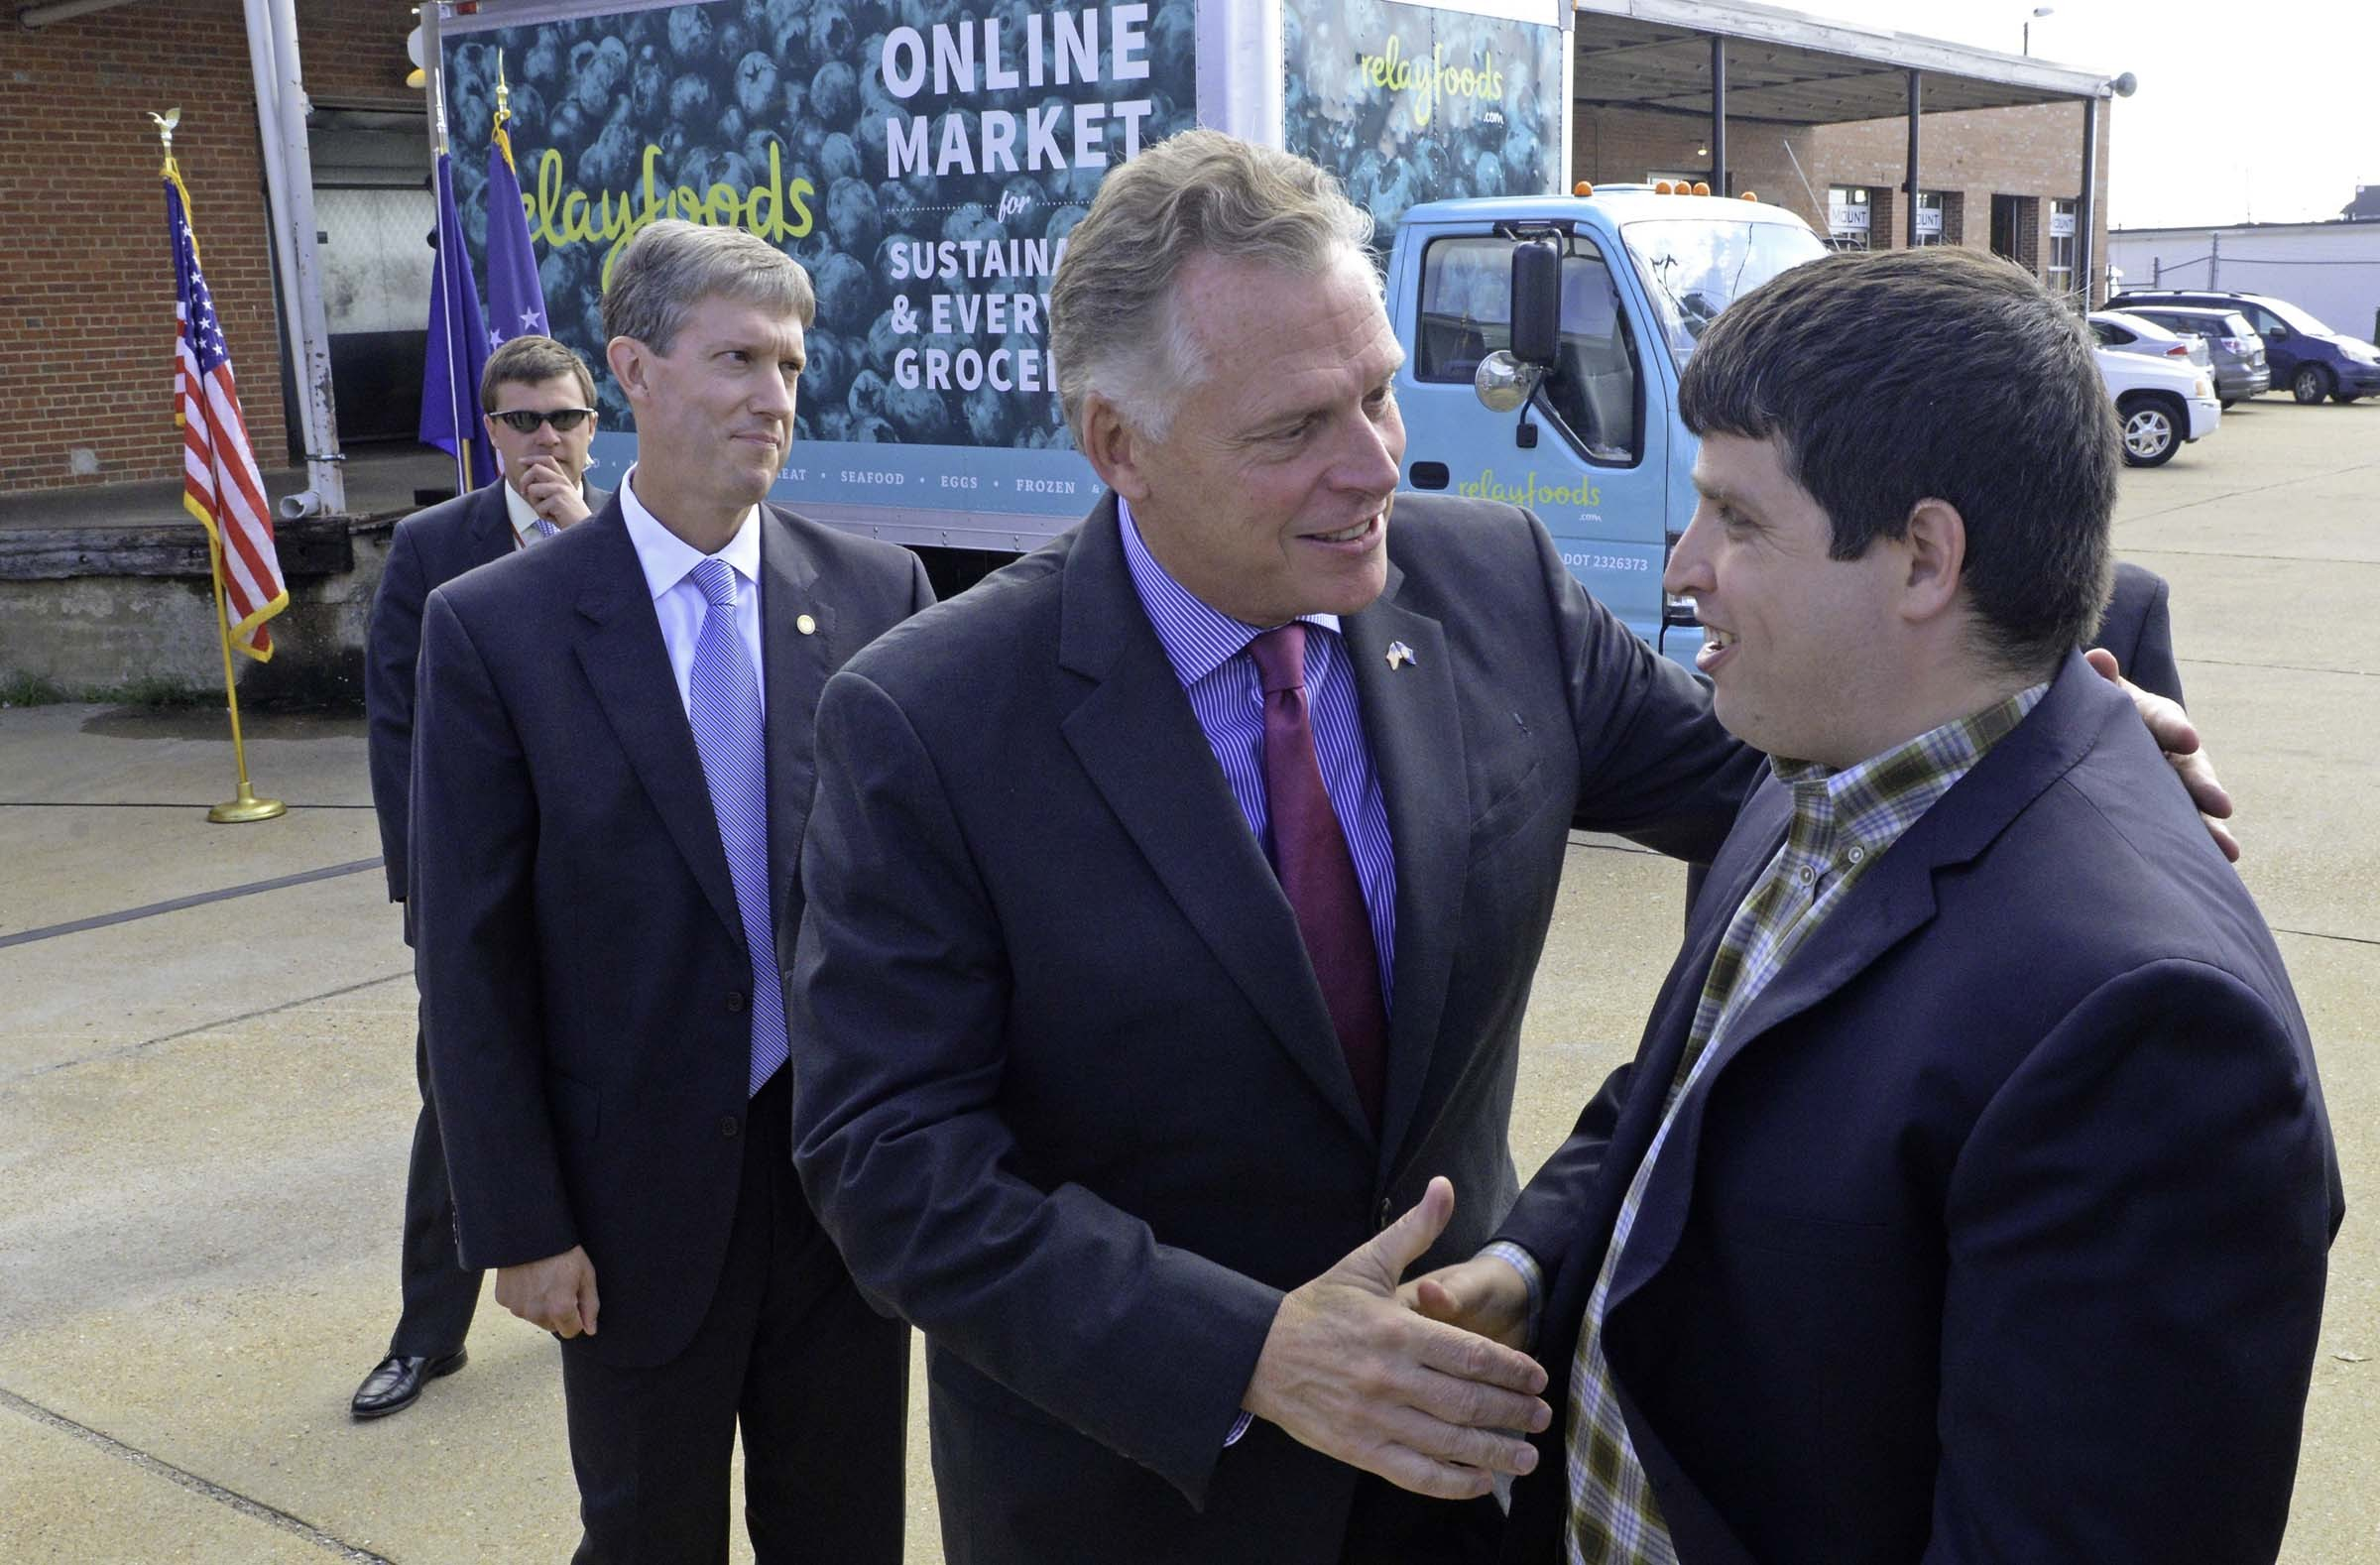 As he did during a promotion of the online grocer Relay Foods, Gov. Terry McAuliffe has been beating the economic drum. - SCOTT ELMQUIST